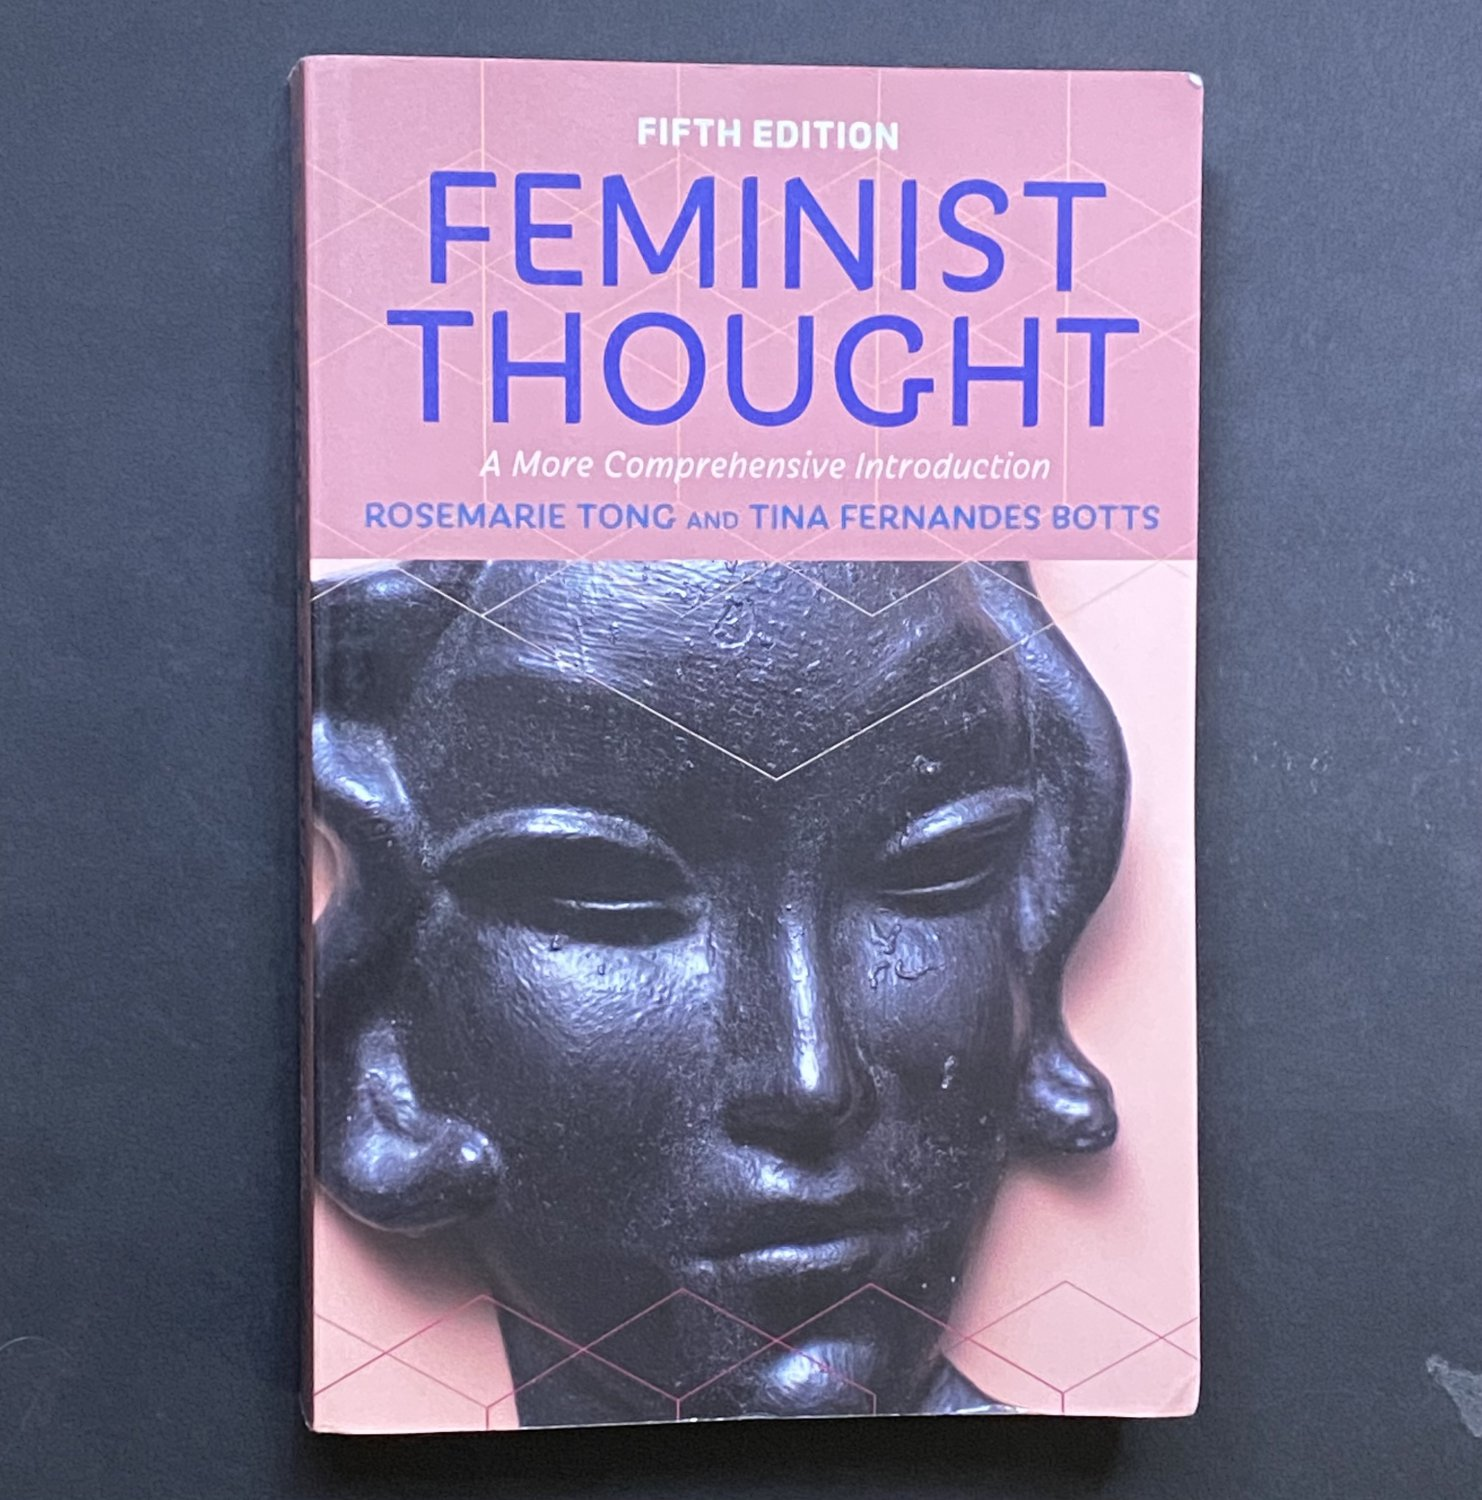 Feminist Thought by Rosemarie Tong Paperback 5th Edition